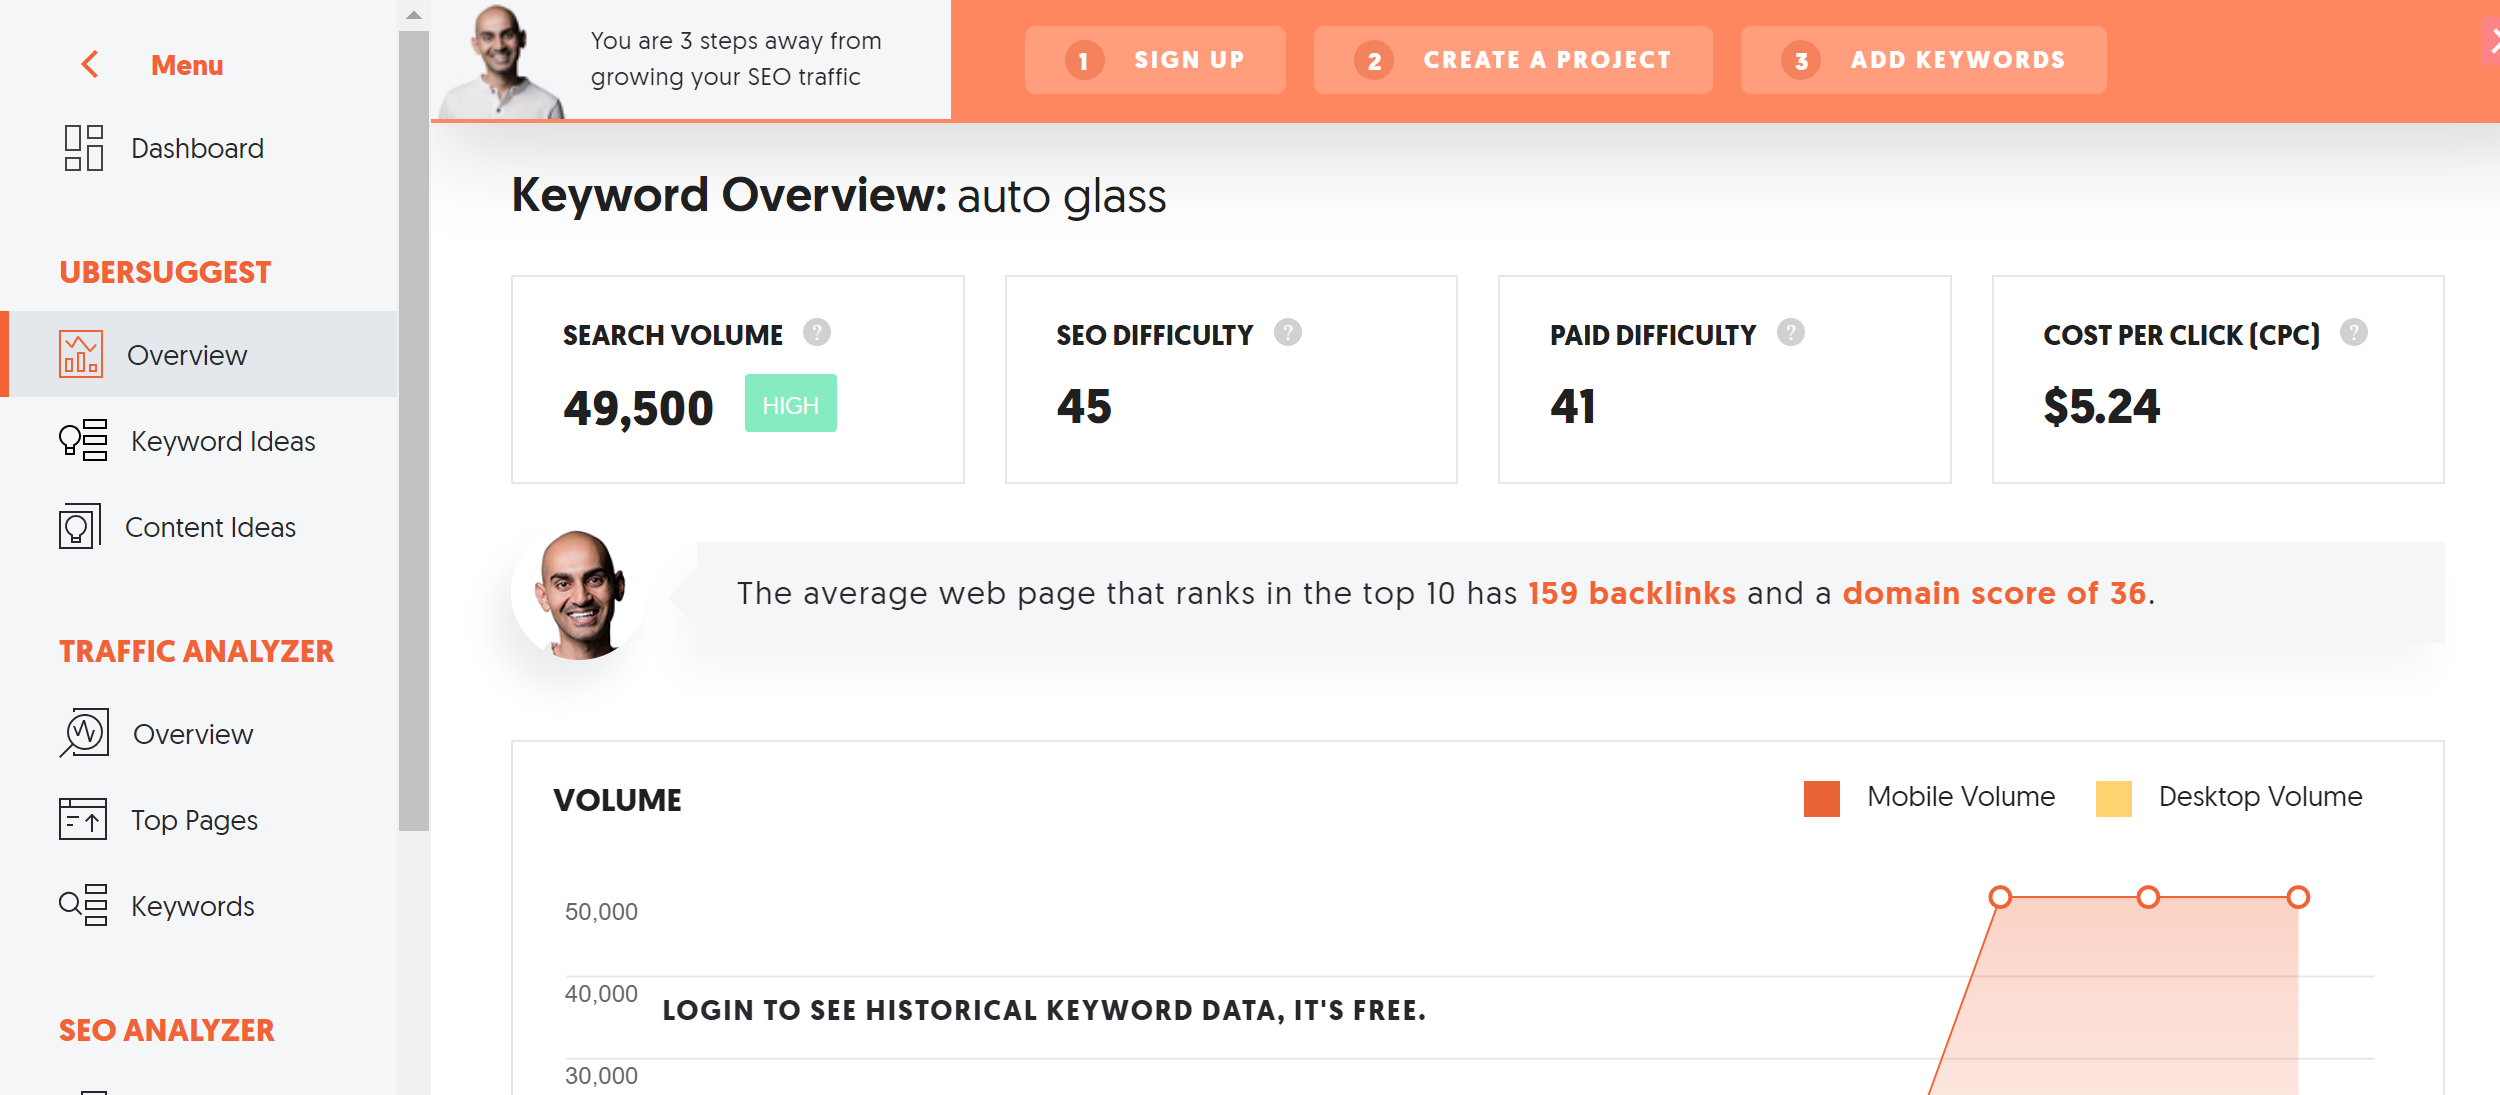 Ubersuggest overview results